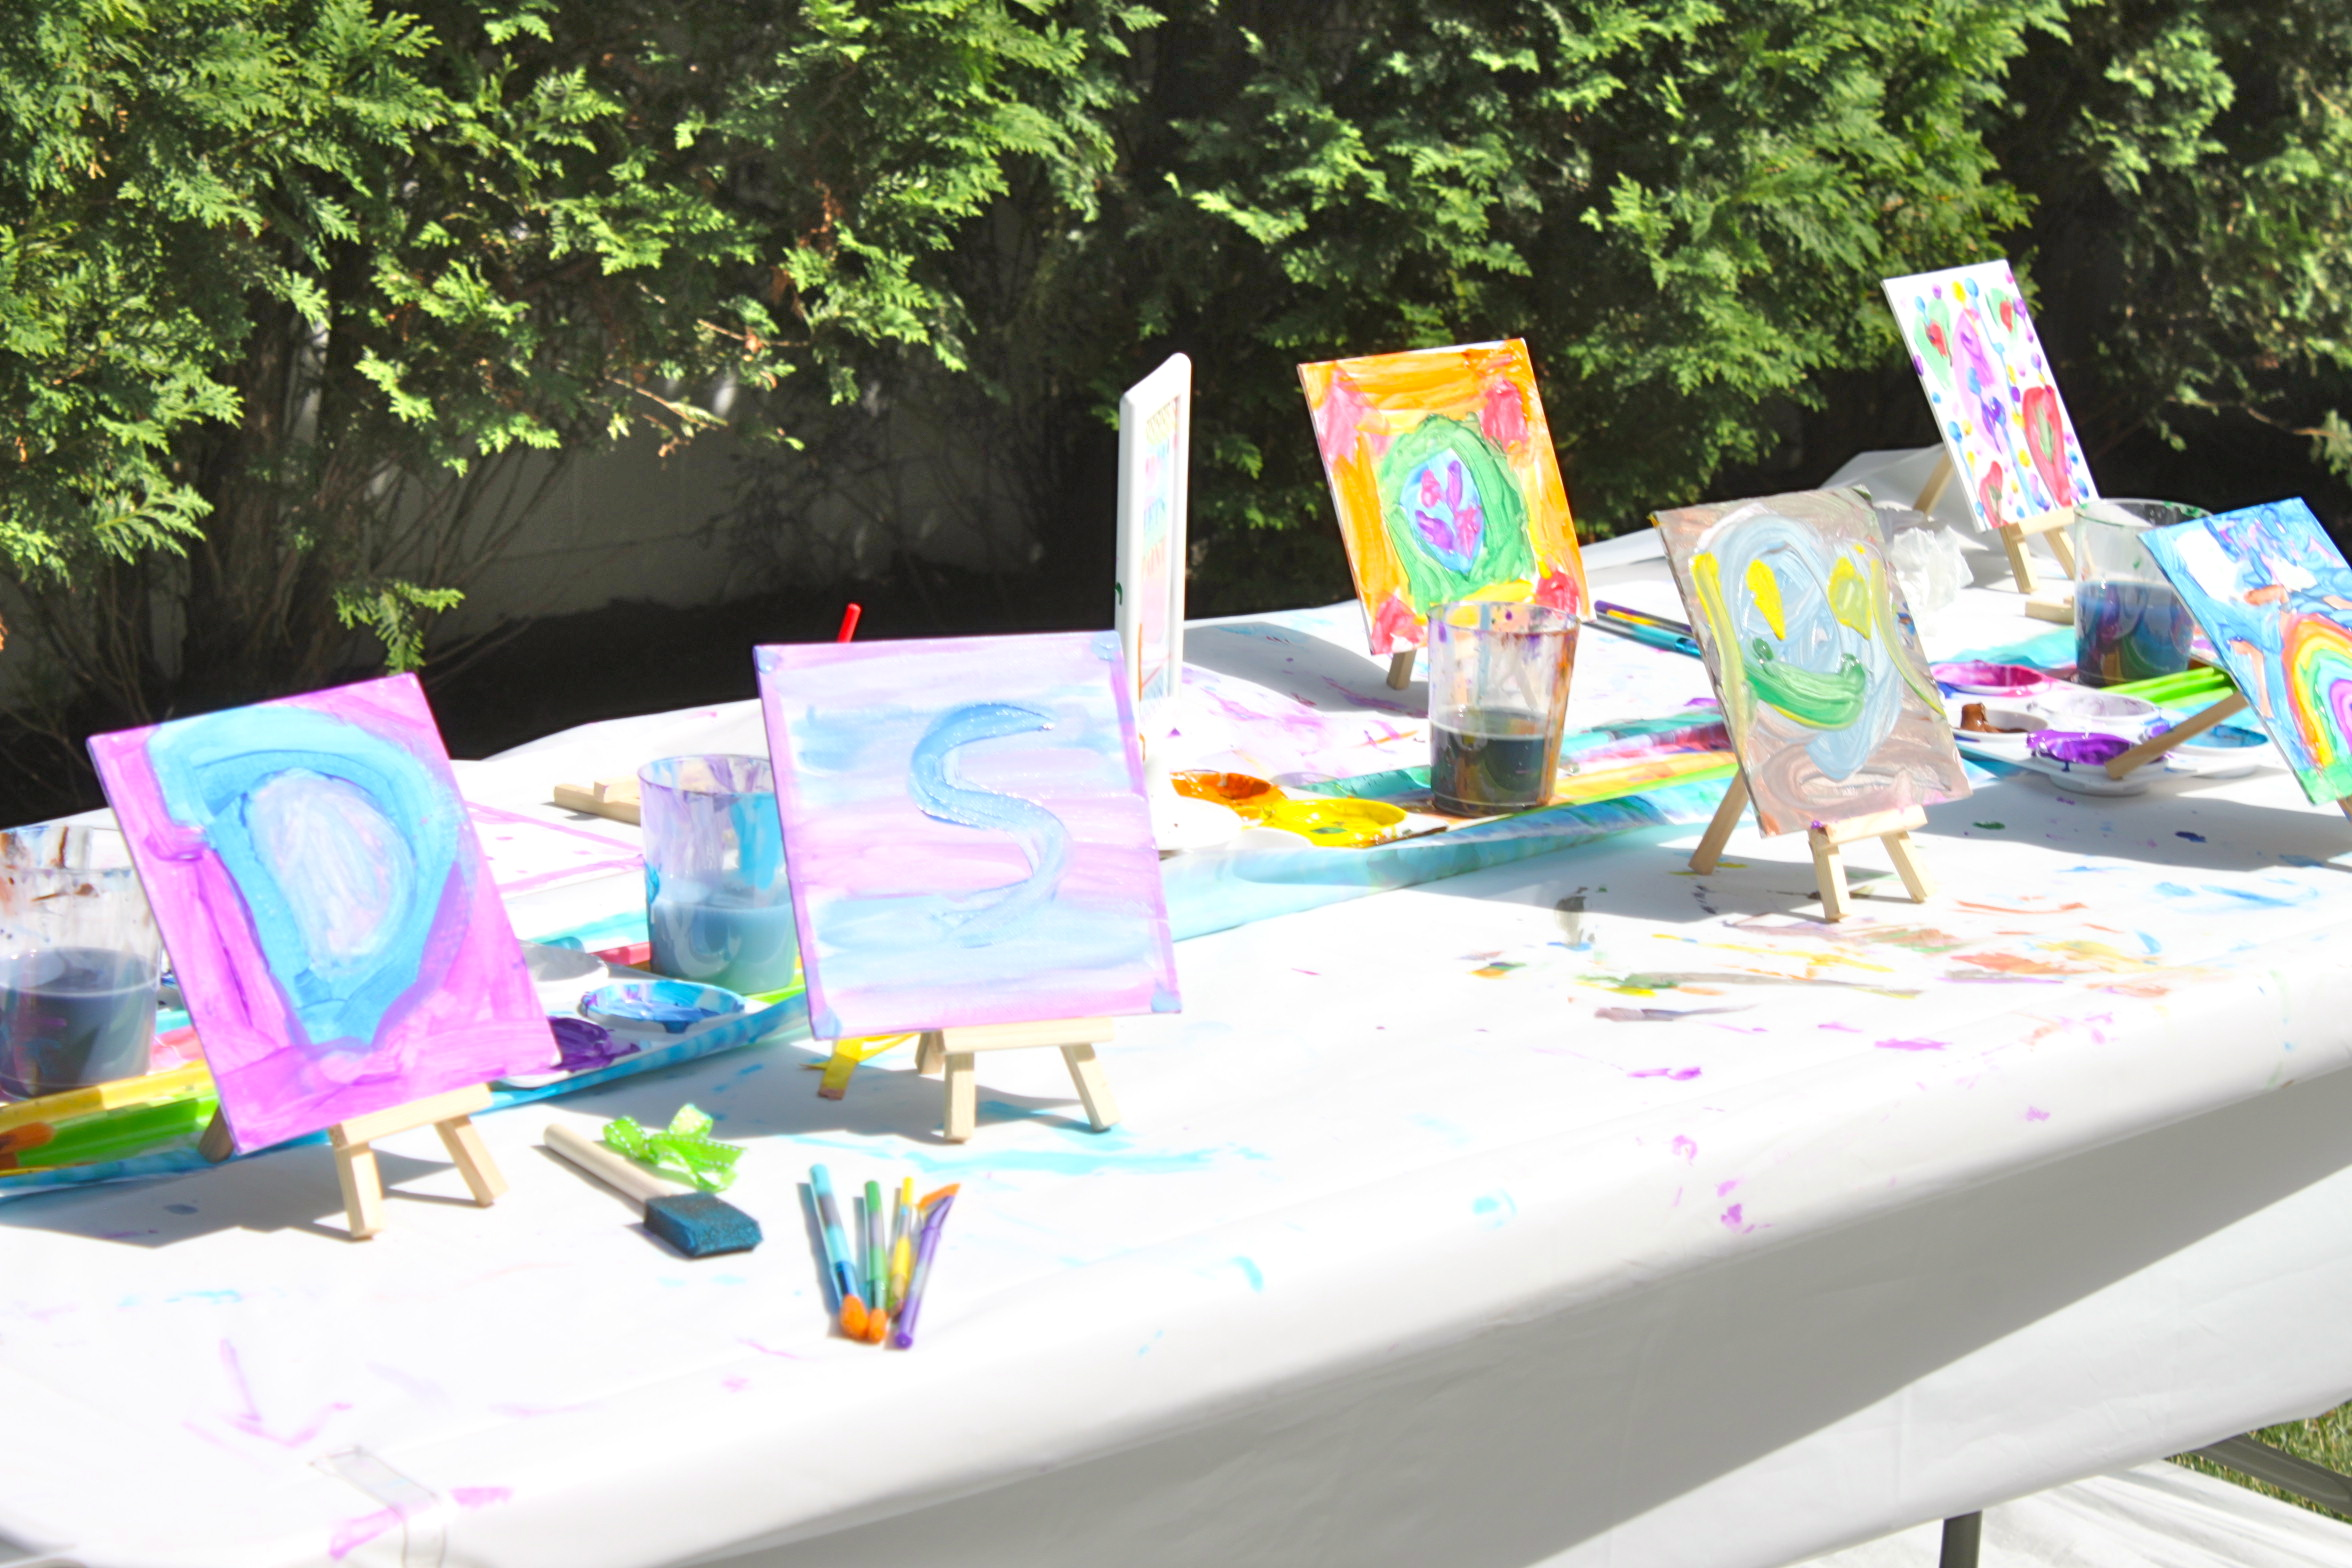 Arts and crafts party ideas - Img_0184